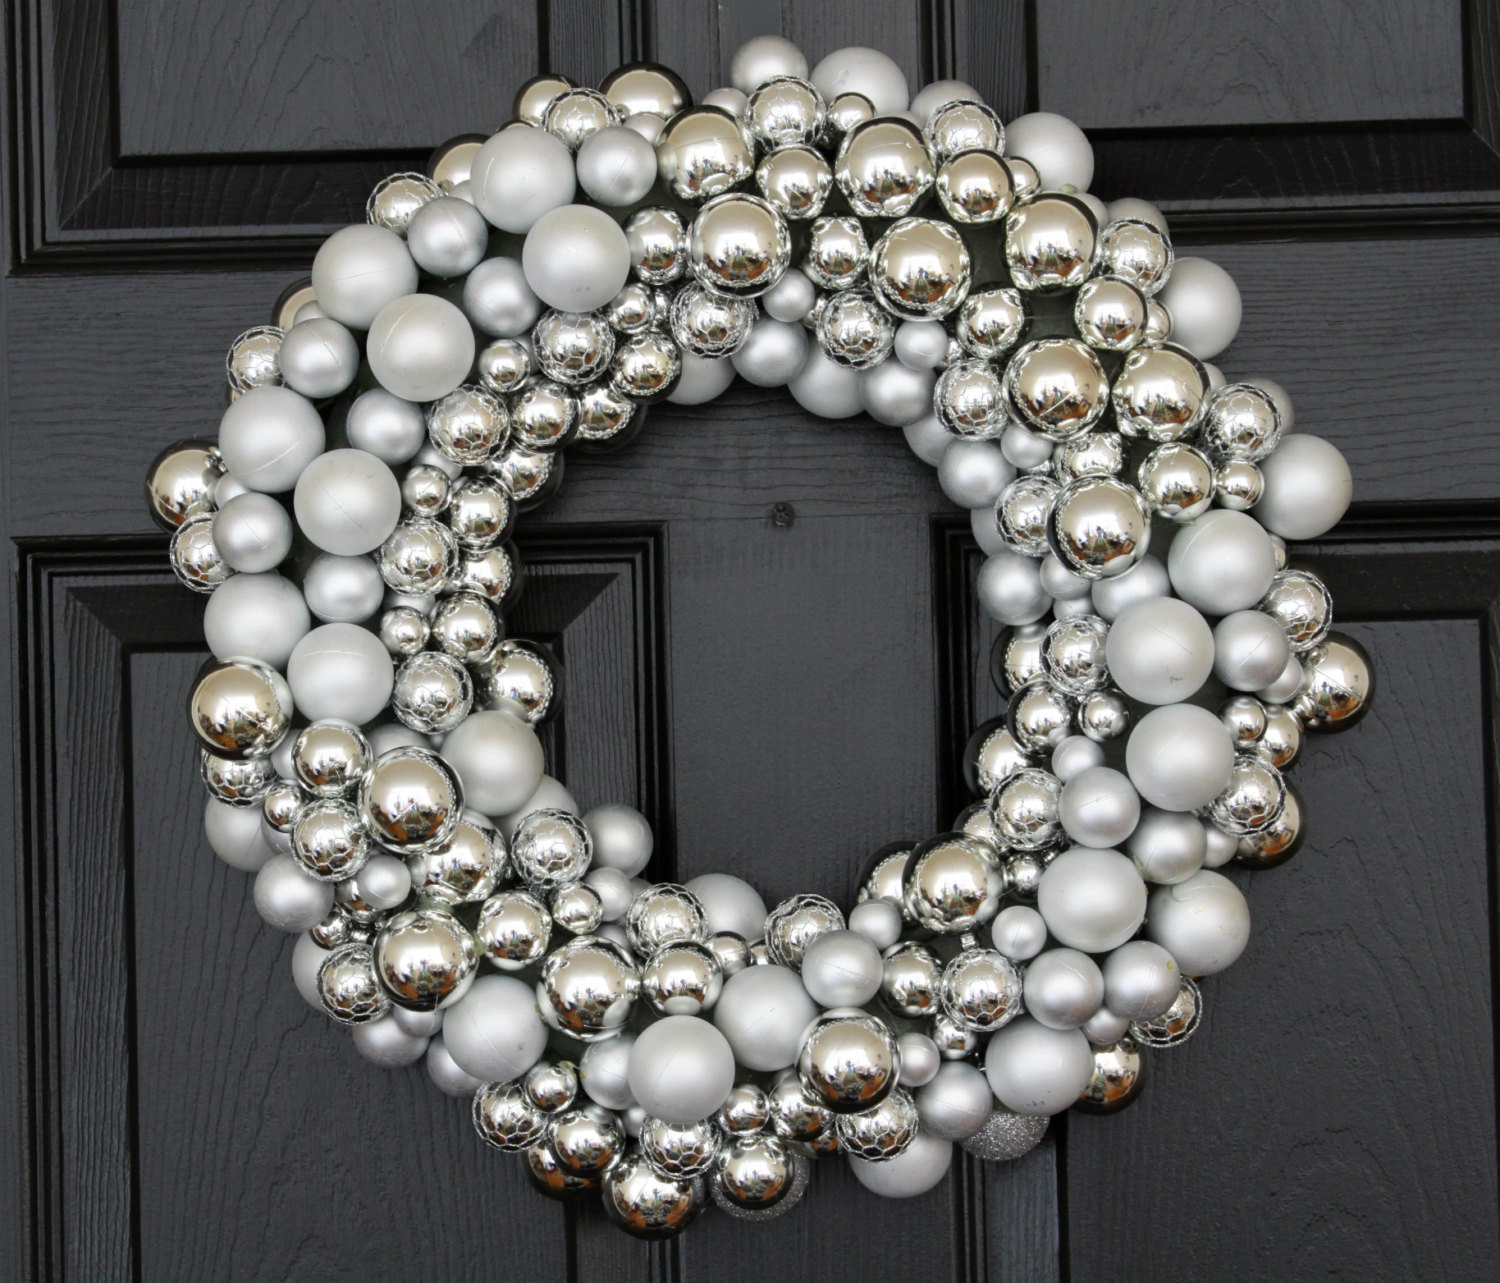 30 Beautiful And Creative Handmade Christmas Wreaths - Style ...